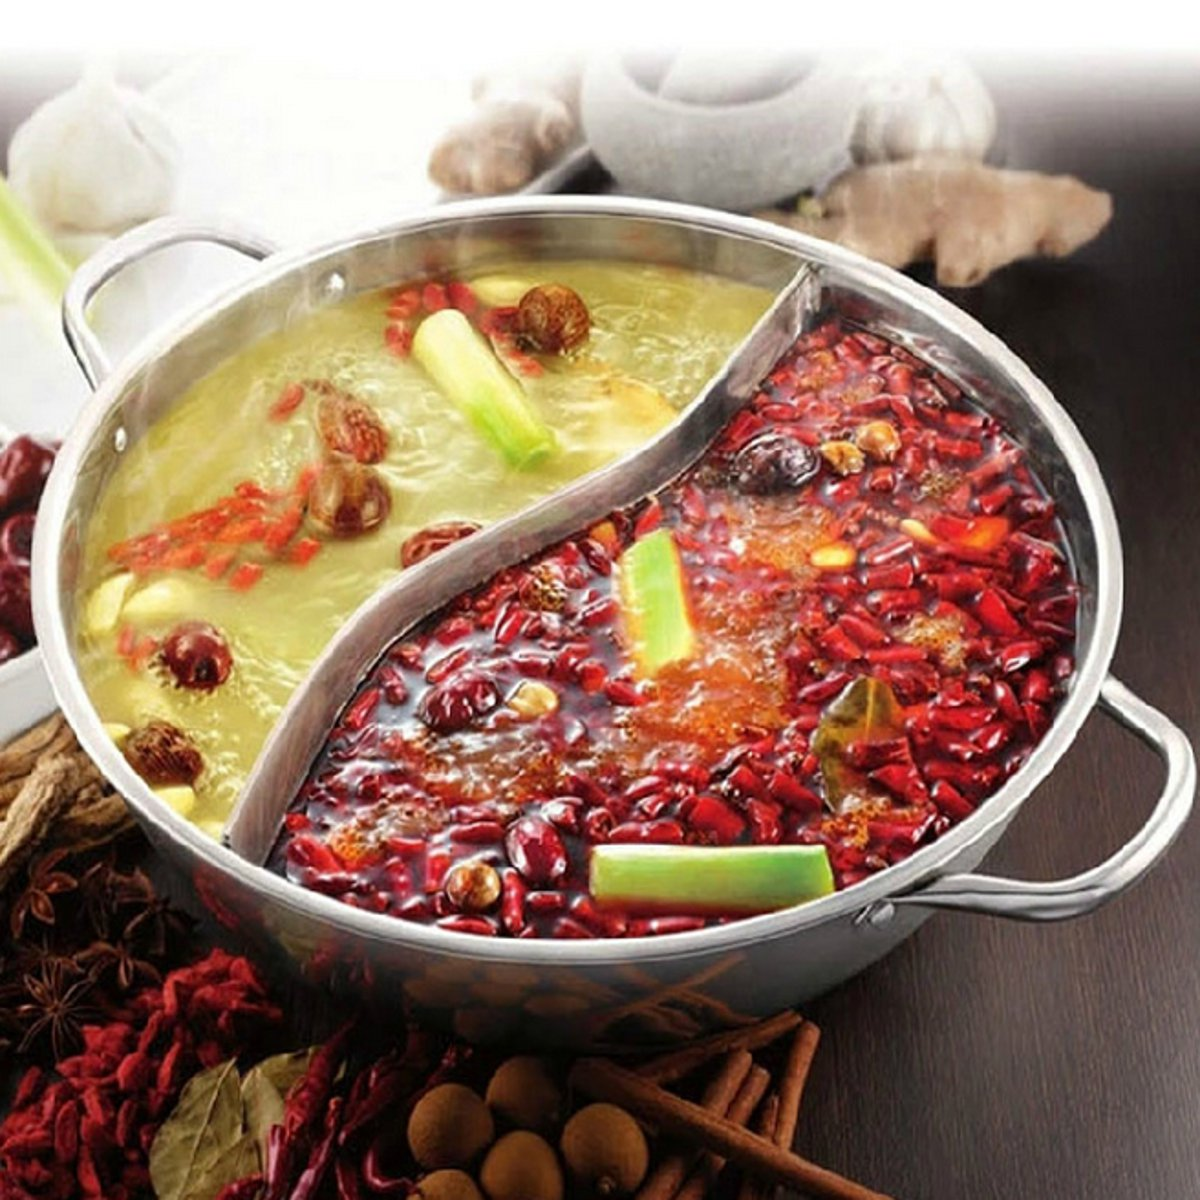 38cm Stainless Steel Twin Divided Hot Pot